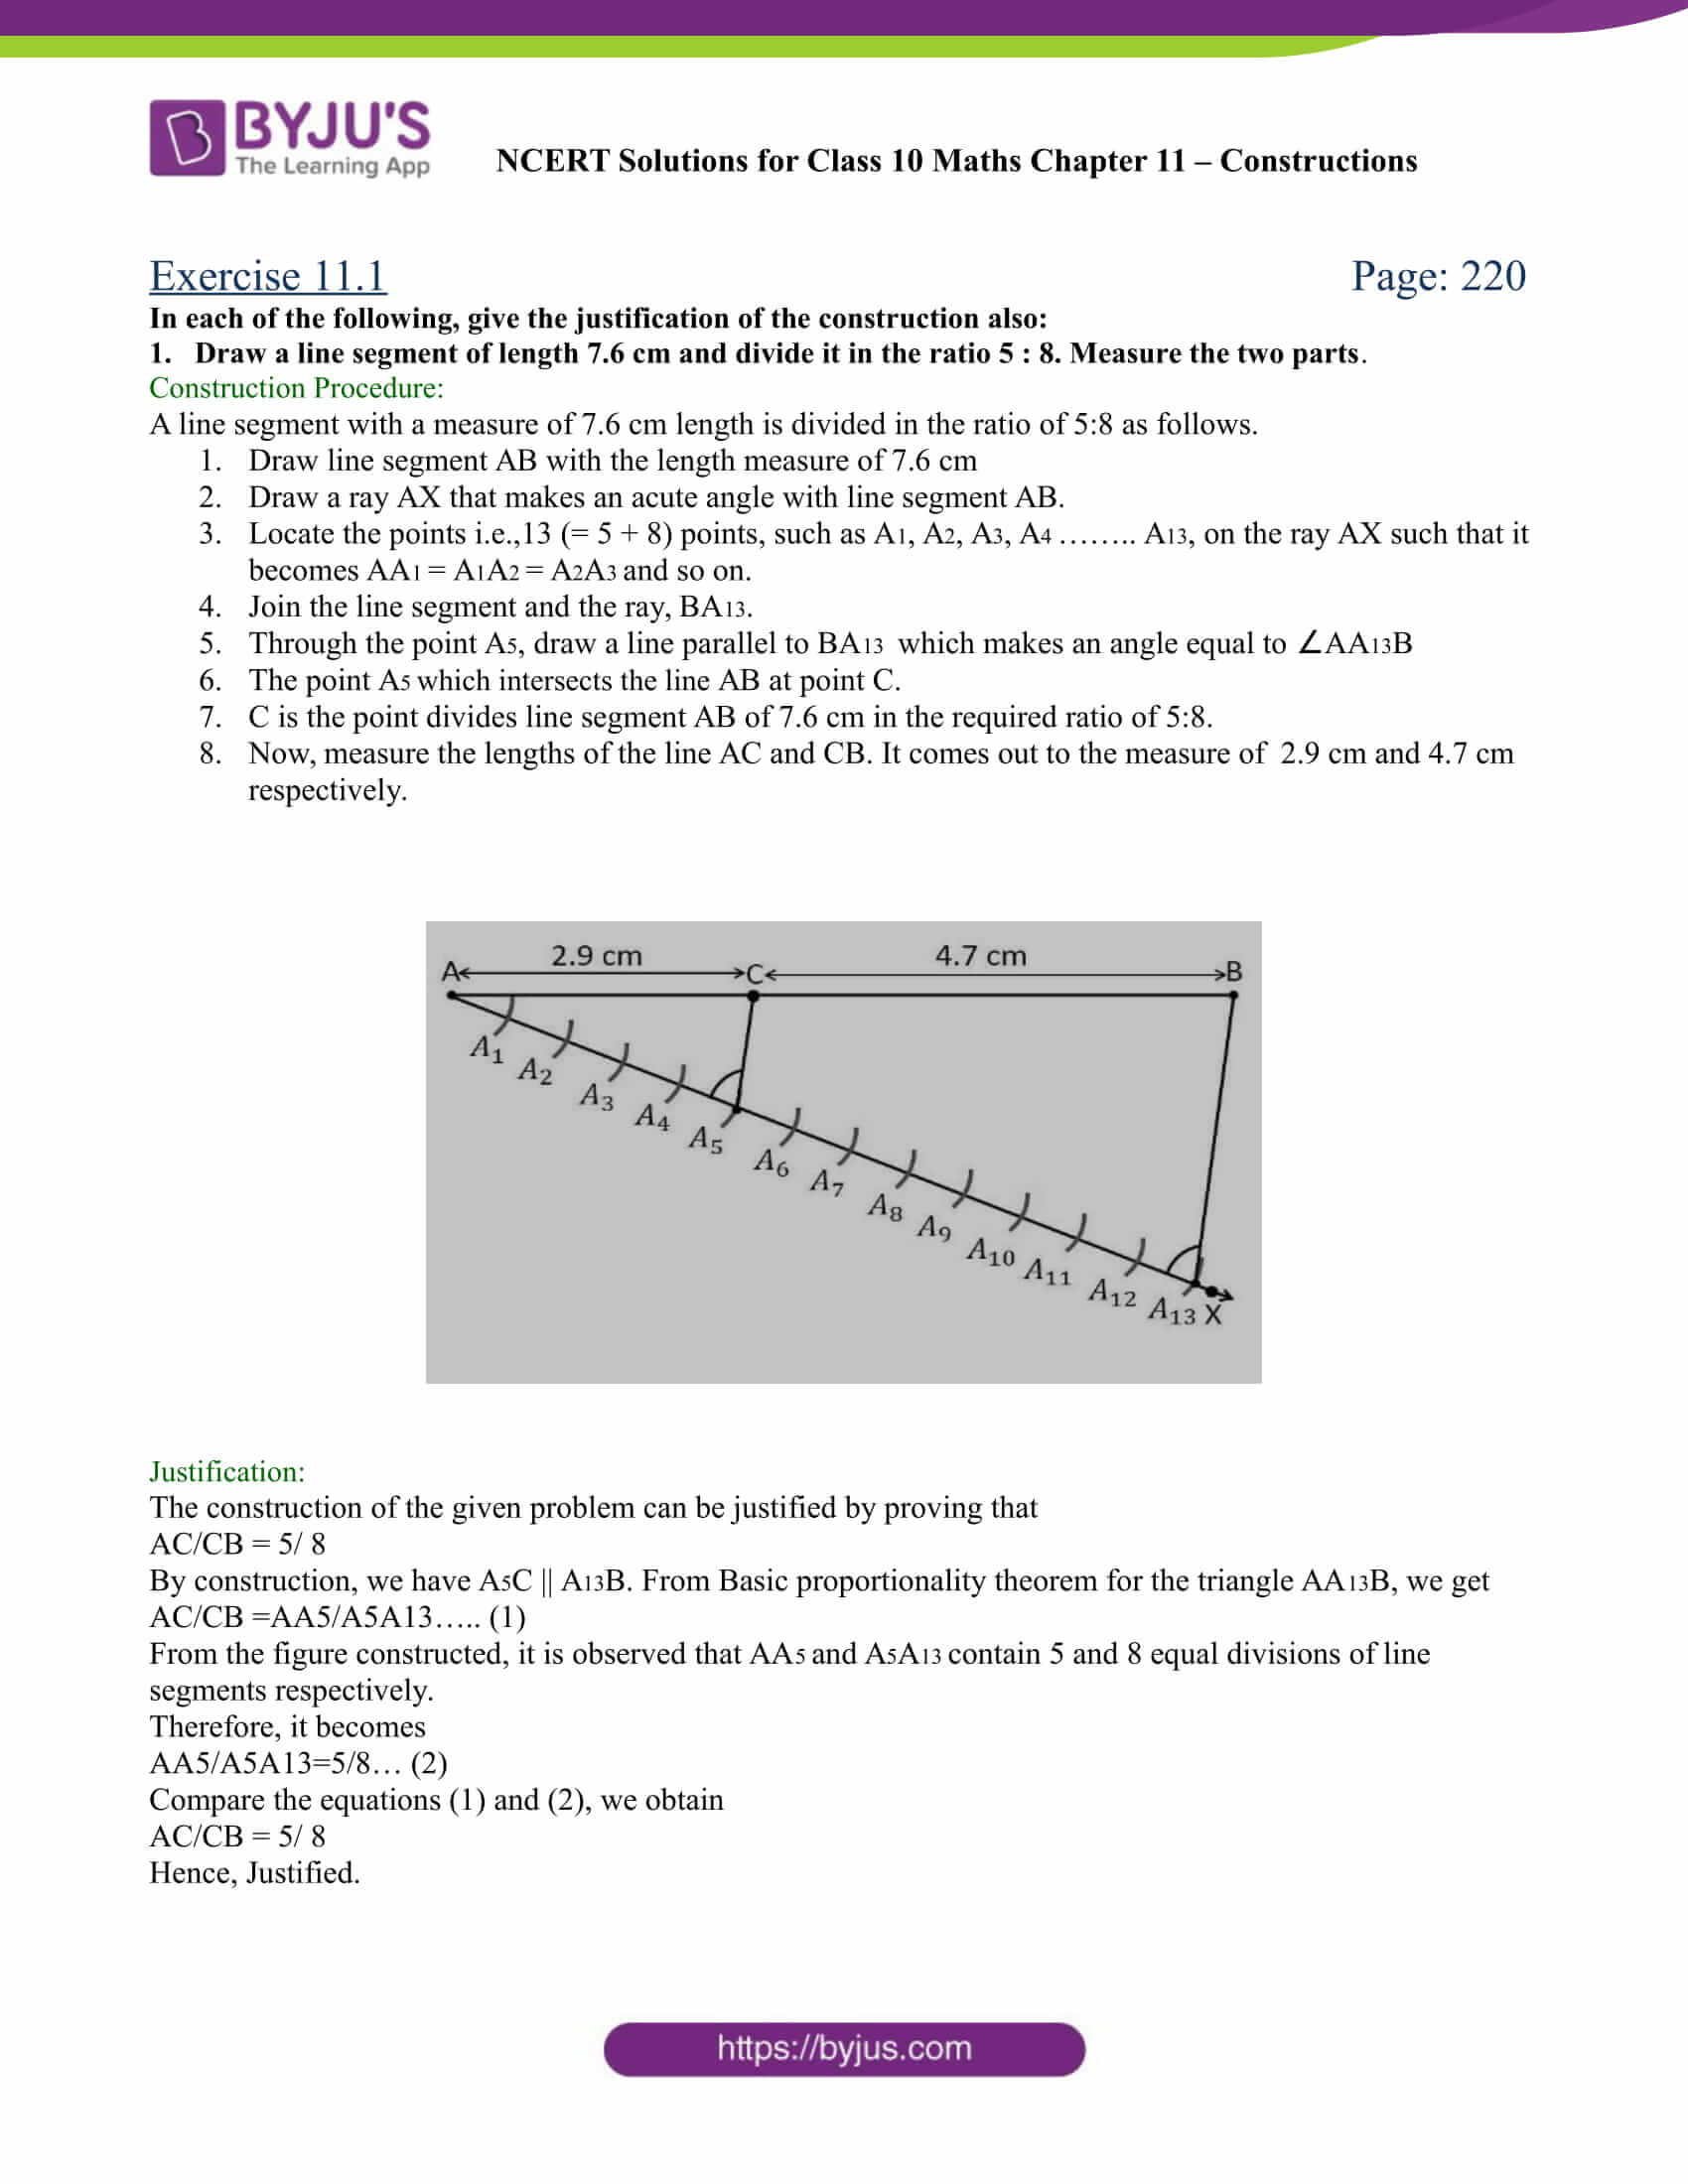 NCERT Solutions Class 10 Maths Chapter 11 Constructions